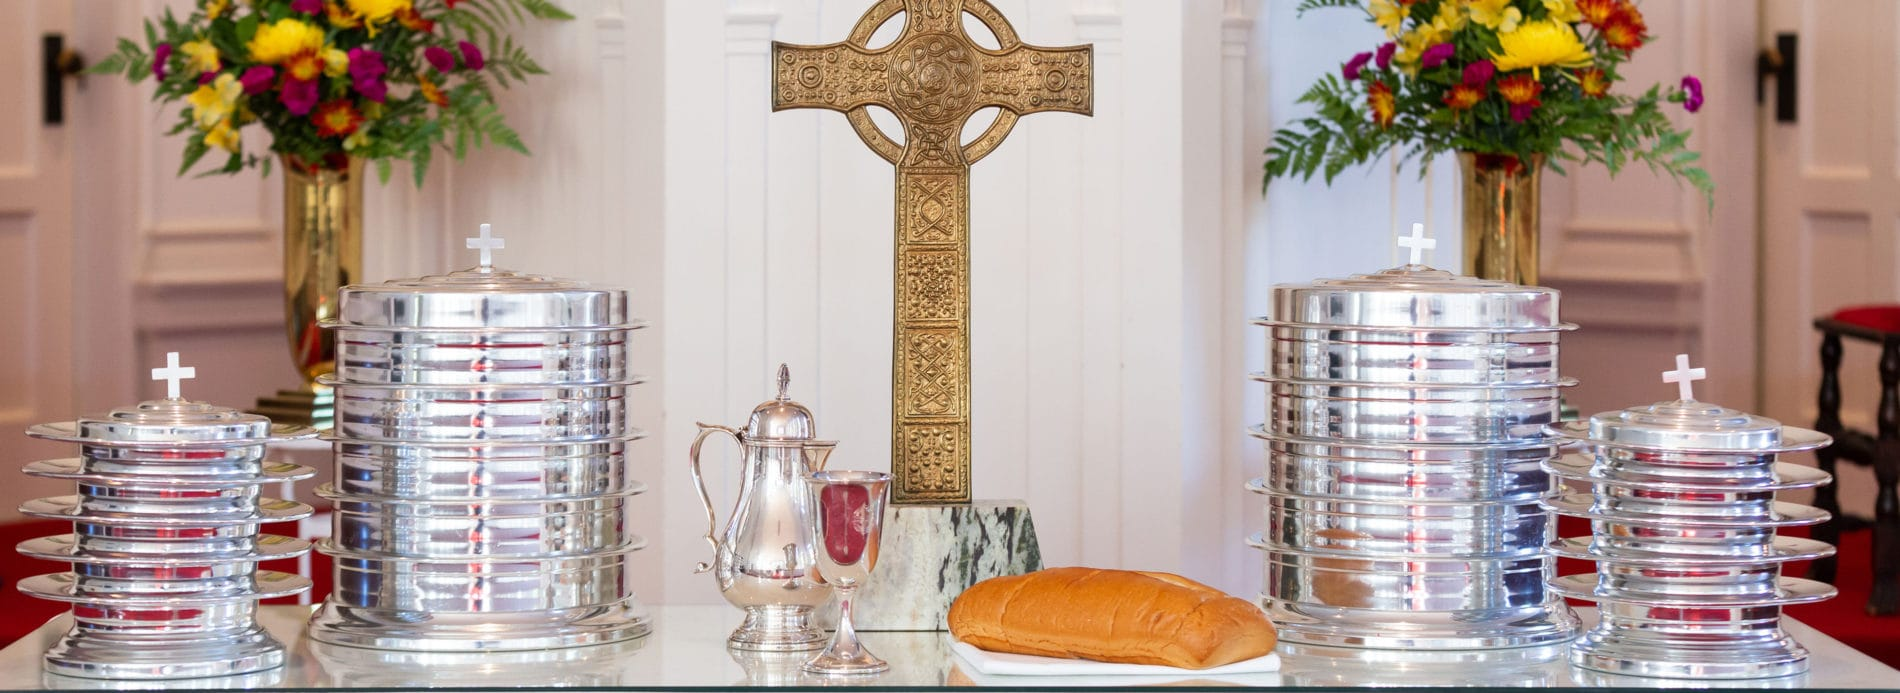 A communion table set with silver. A gold cross in the background.